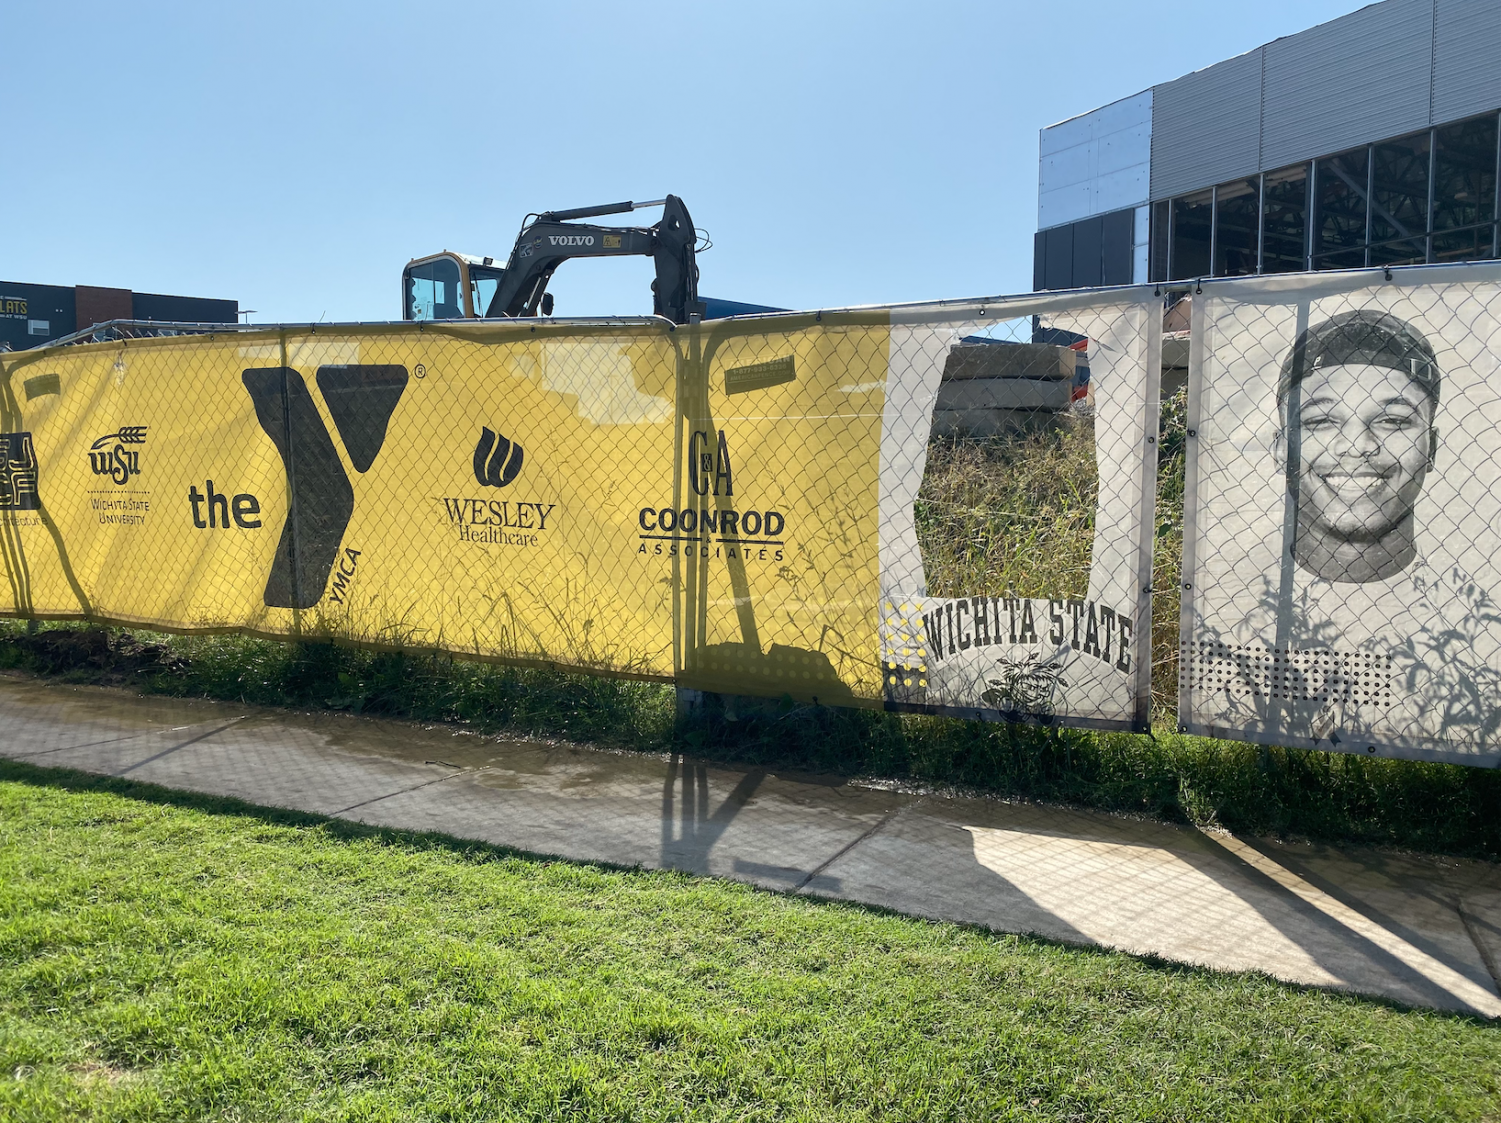 A person's face was cut out of a banner hanging outside the construction site of the soon-to-be Steve Clark YMCA and Student Wellness Center.